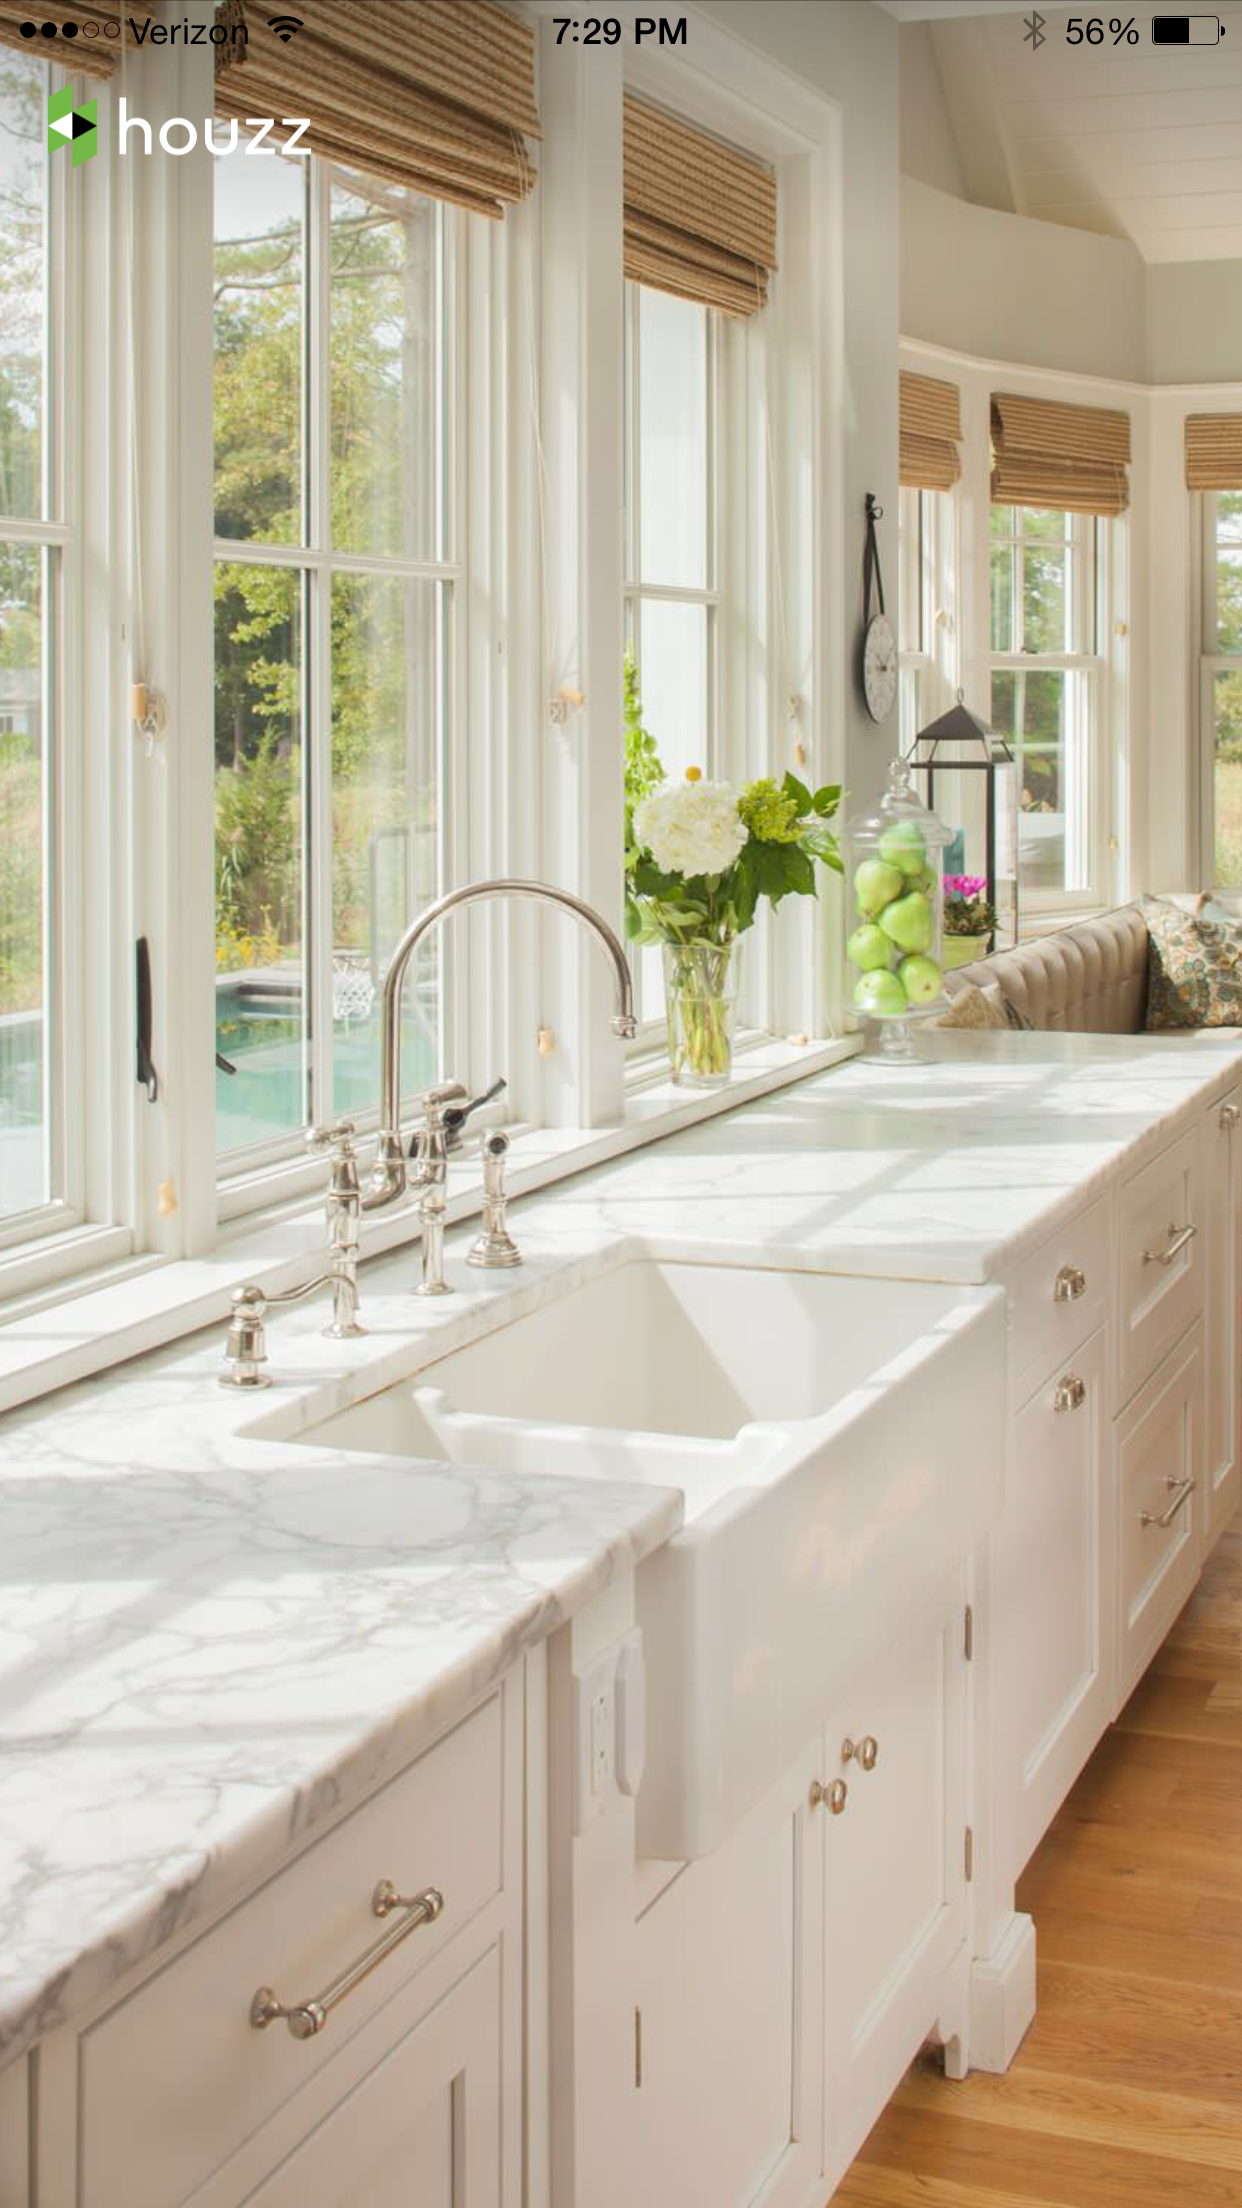 Love The Natural Light White Cabinets And Double Basin Sink Would Do A Marble Look Alike In Quartz To White Kitchen Design Kitchen Design Kitchen Renovation